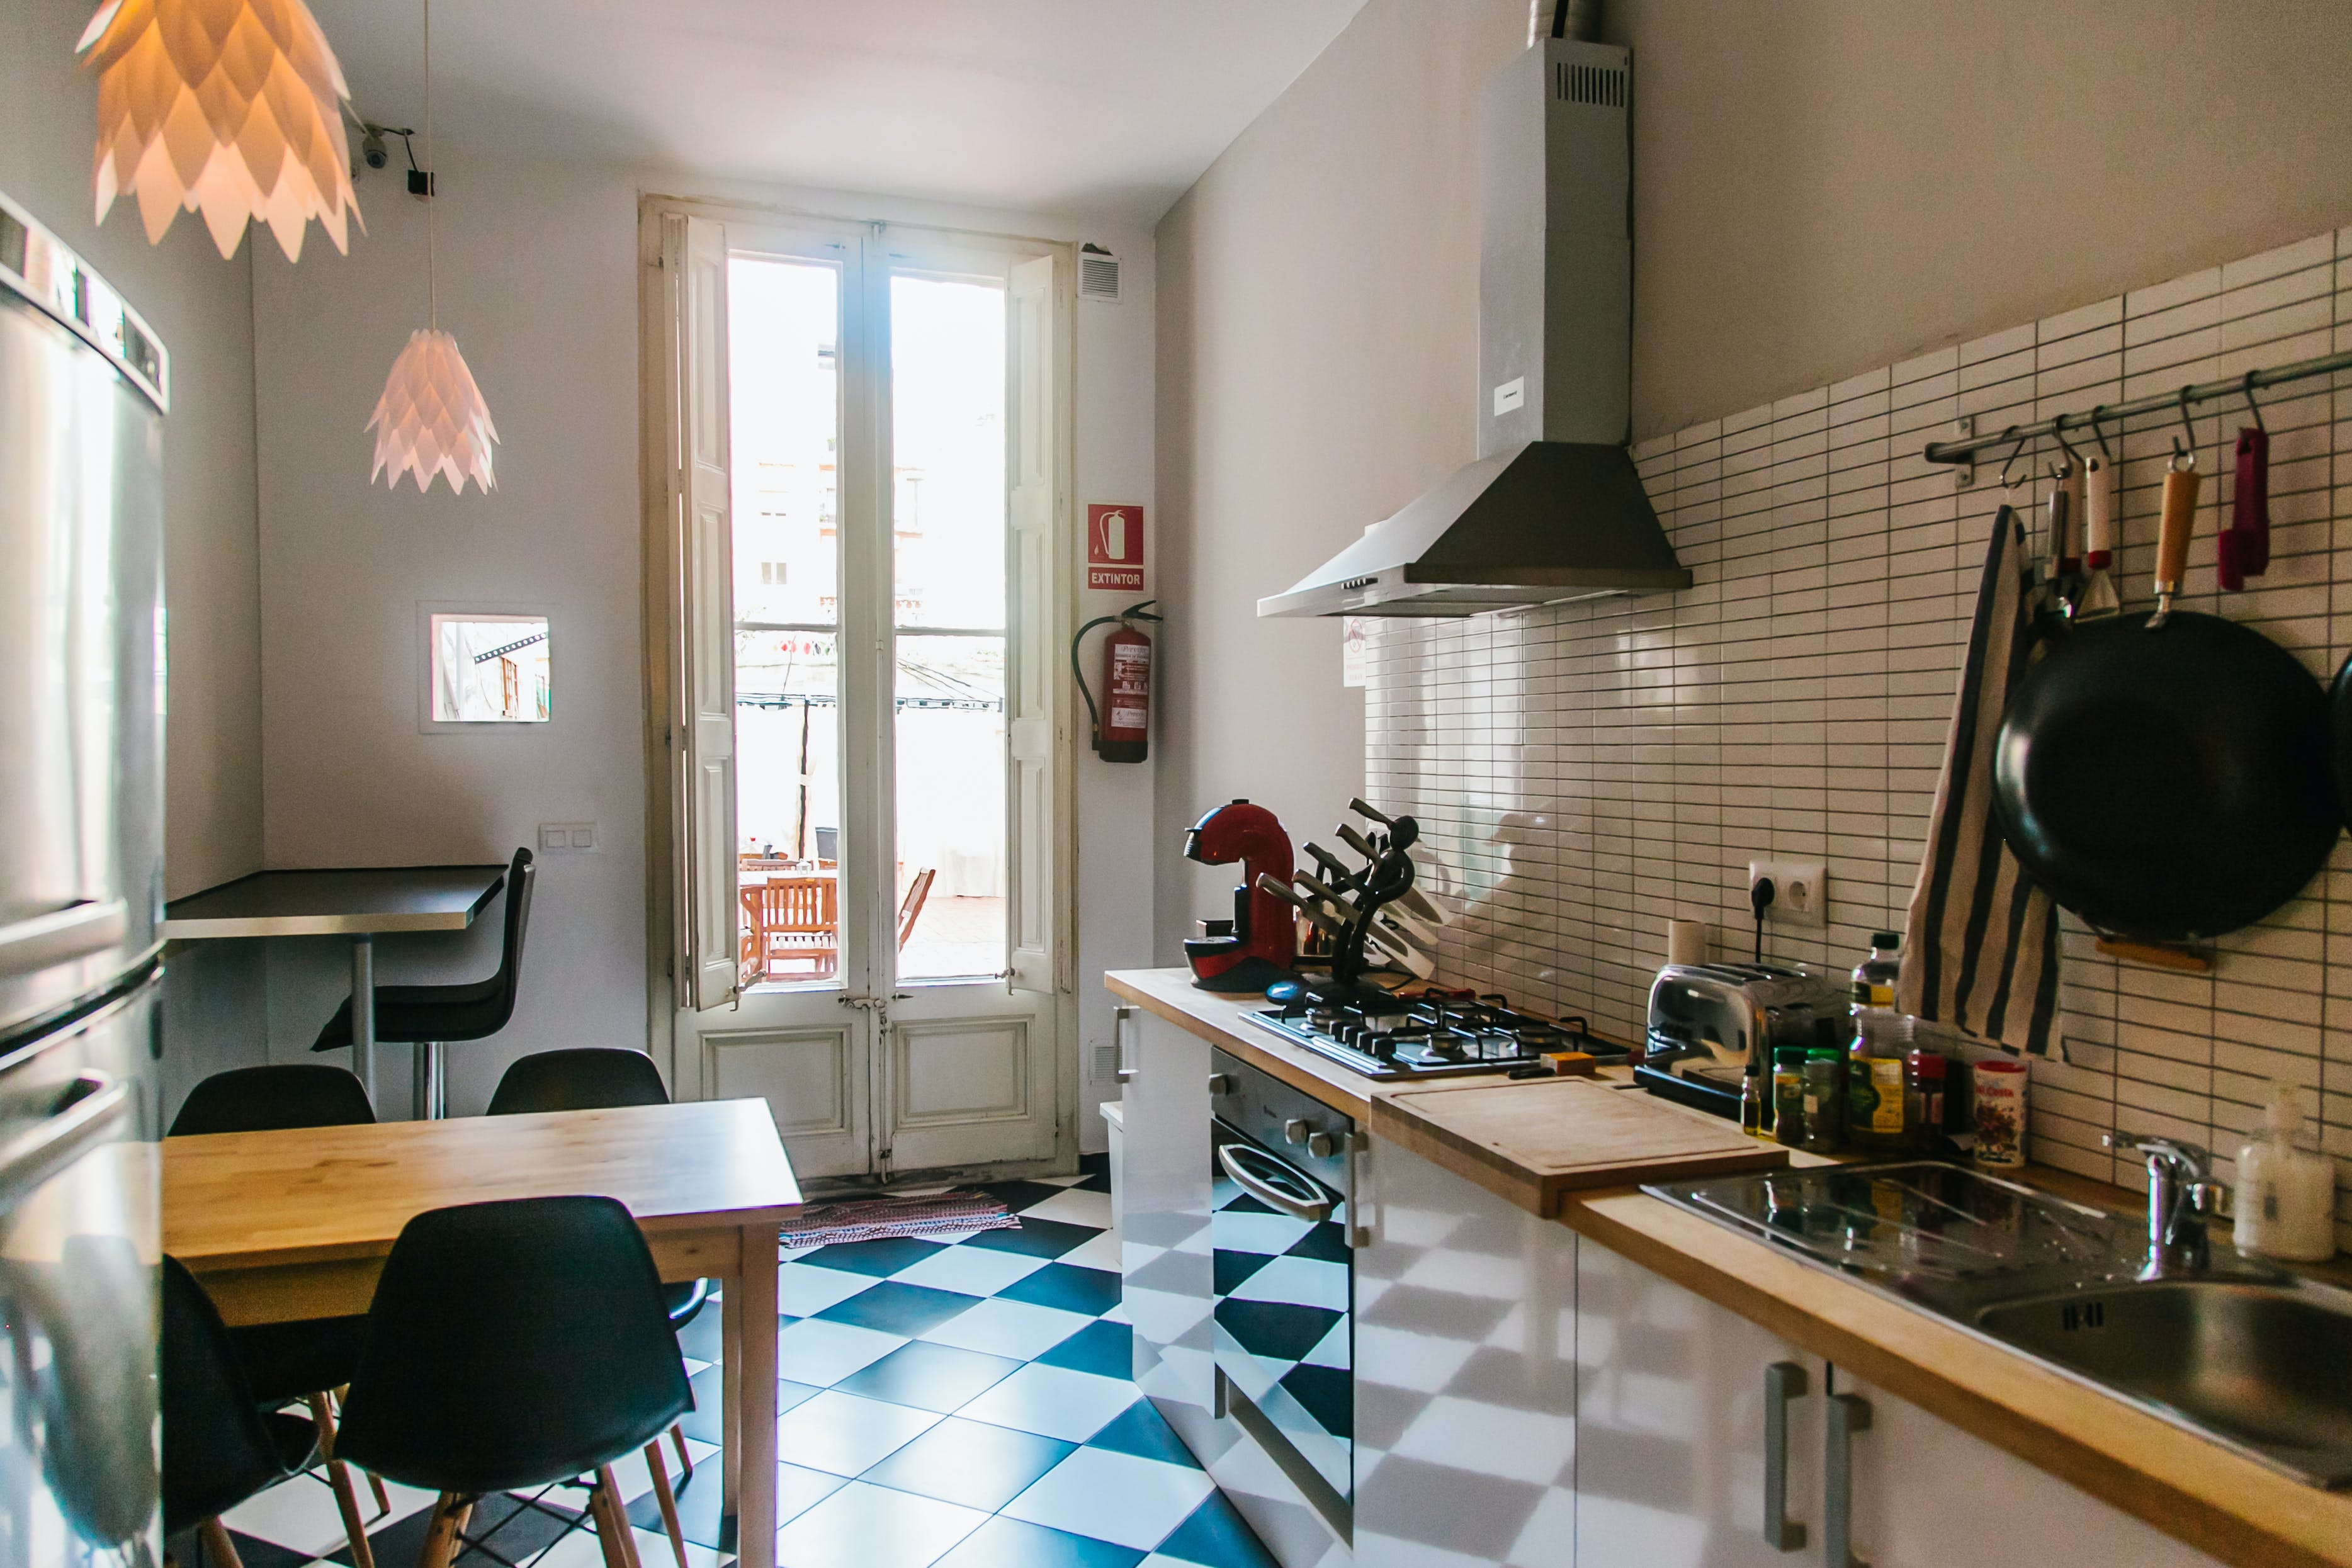 11 Residents | El Poble Sec | Antique Renovated House - Incl. Coworking + Relaxed Rooftop Deck